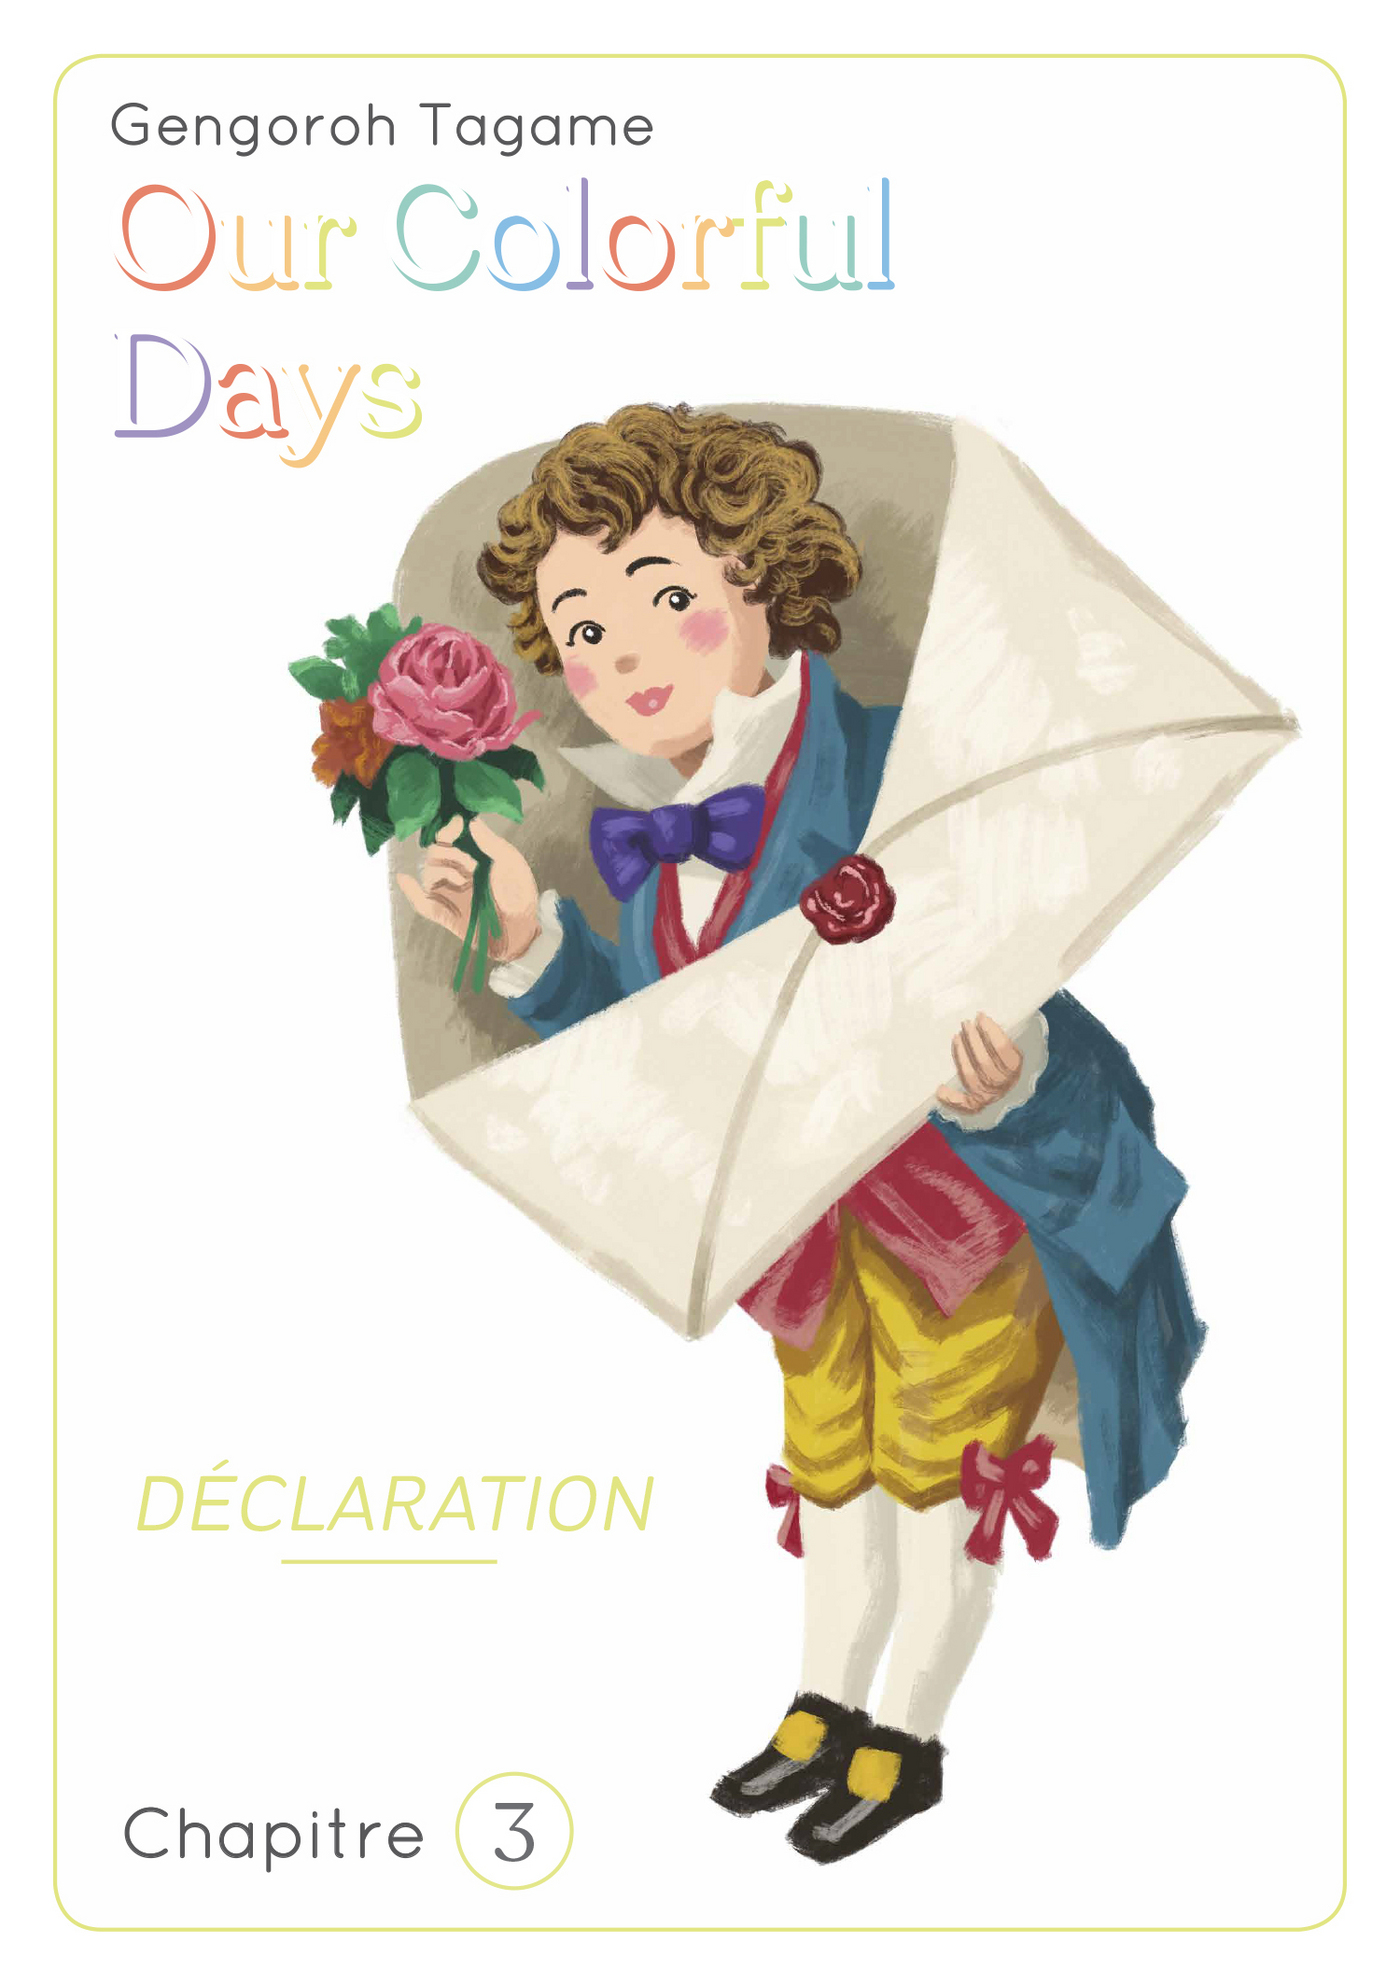 Our colorful Days - chapitre 3